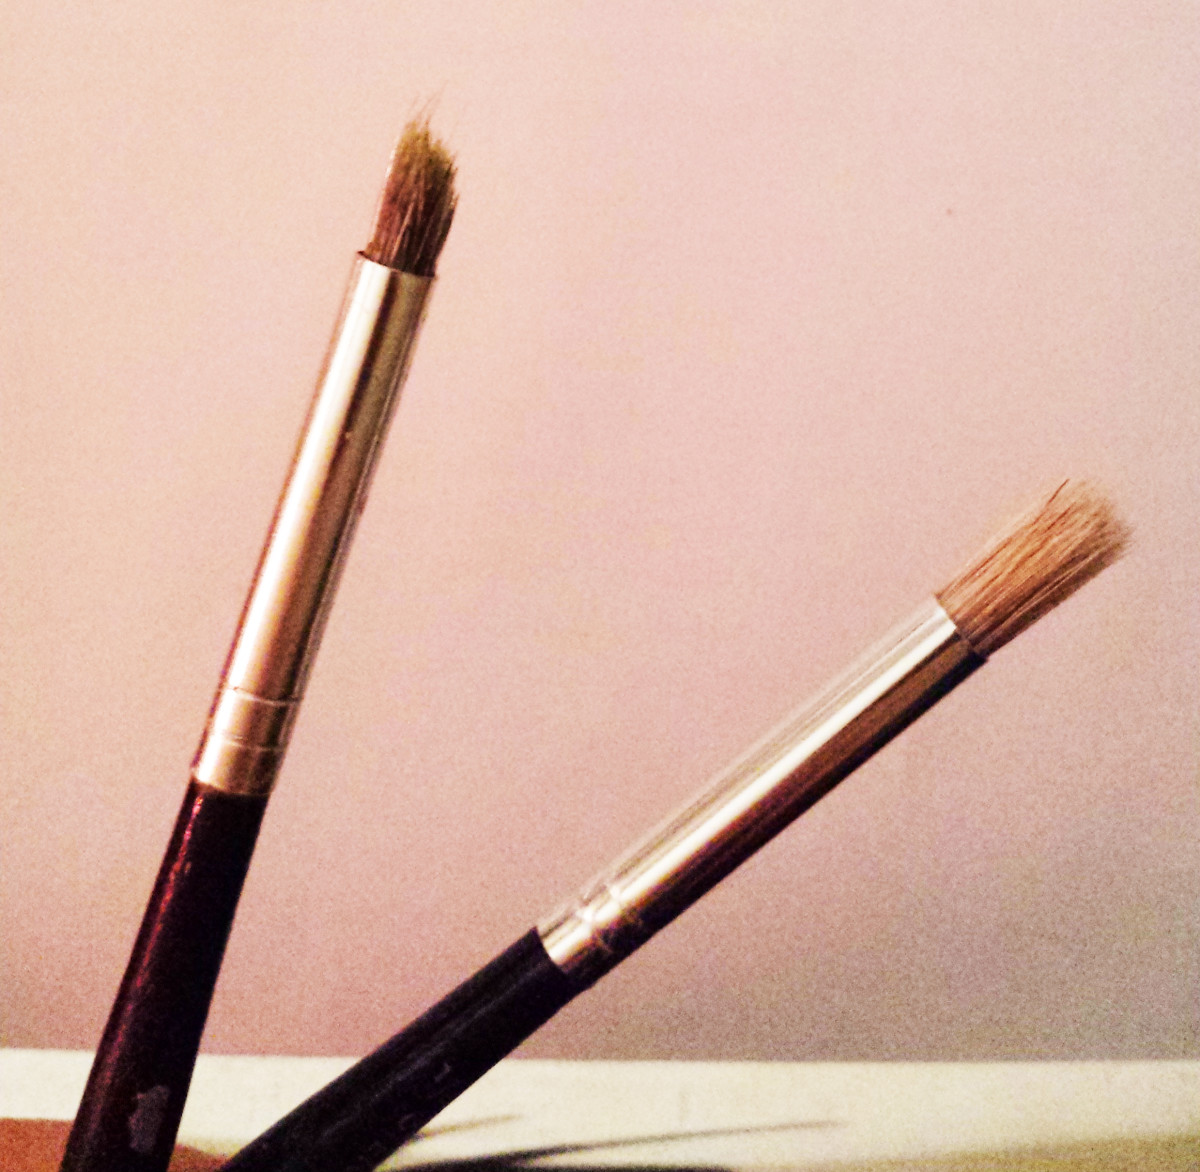 The brush on the left is my favorite brush for applying layers of paint. It gives a nice blend. It looked like the one on the right, brand new. If my fave brush goes kaput, I'll have to wait for the one on the right to become like it. Or find one.